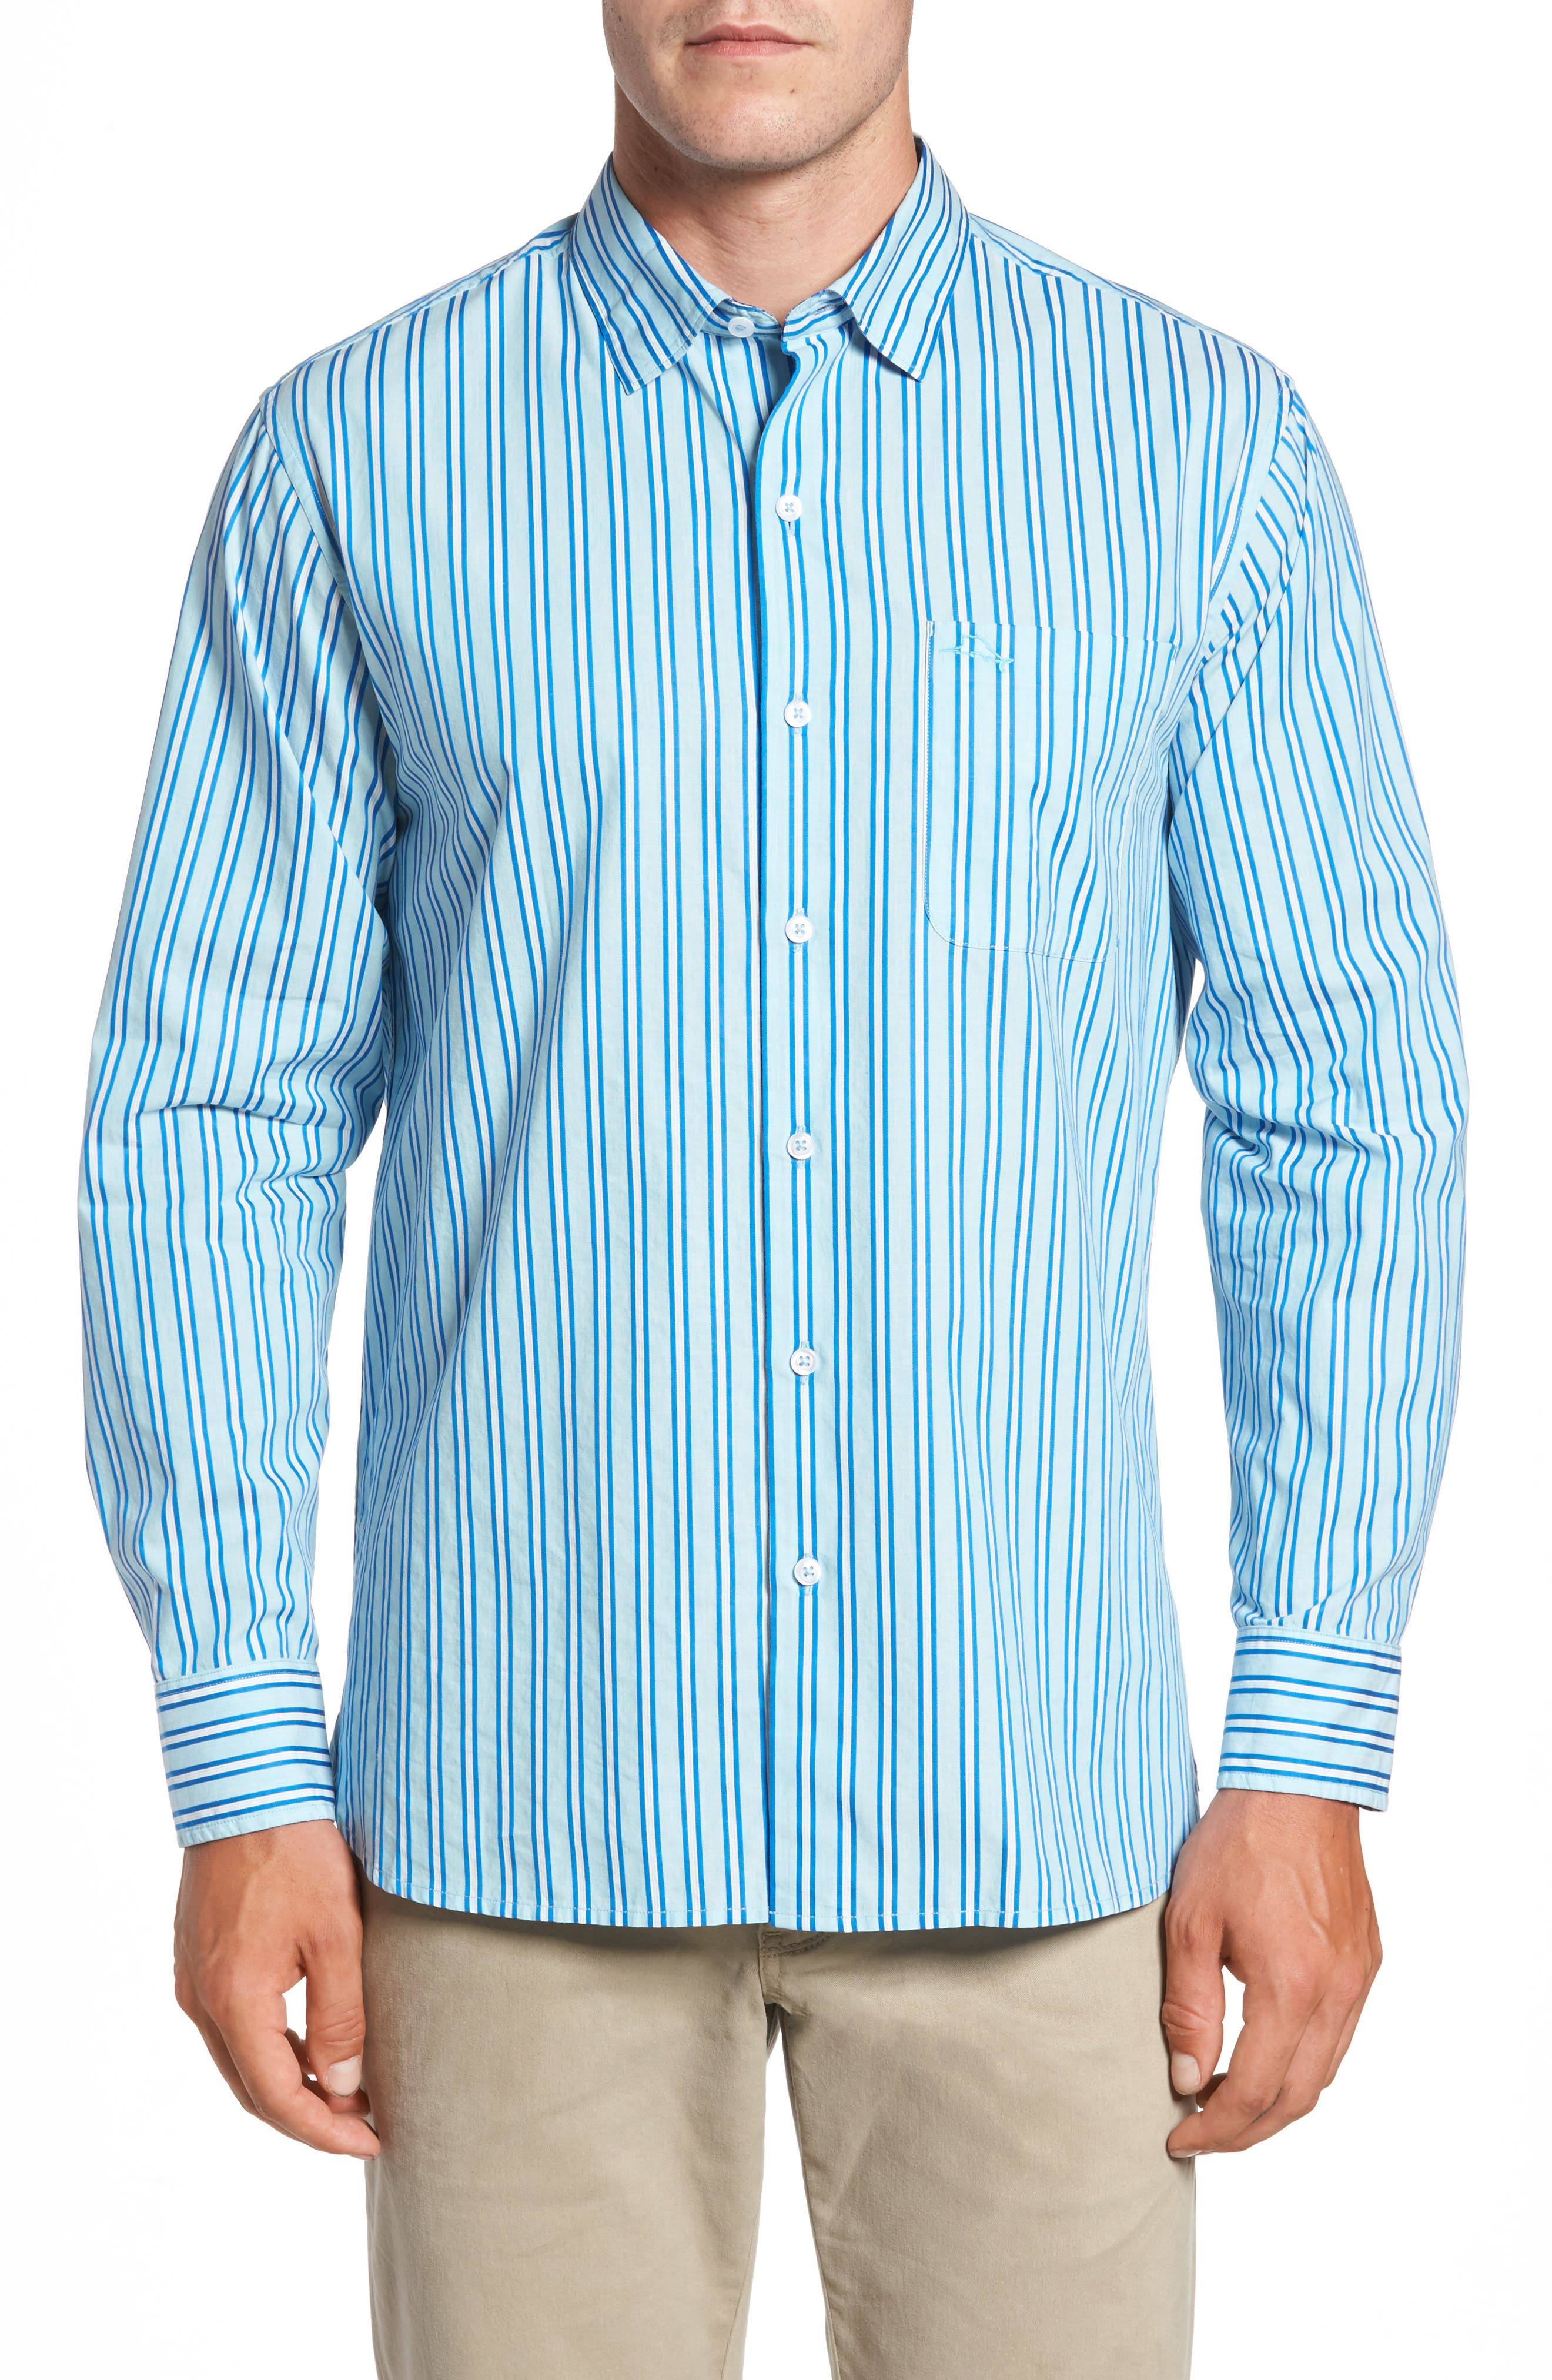 Tommy Bahama Surf the Line Stripe Sport Shirt (Big & Tall)